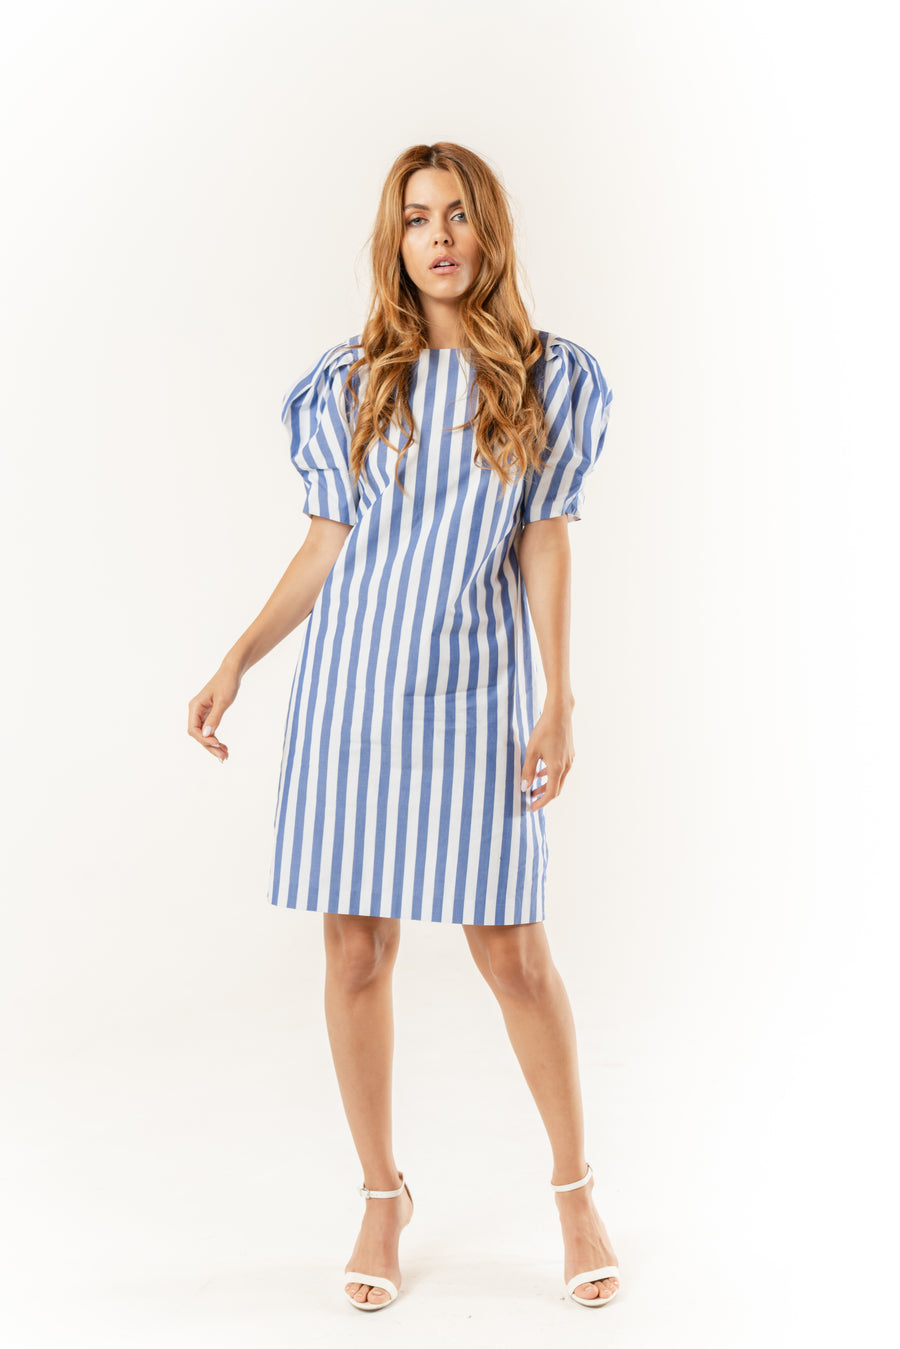 Barb Puff Sleeve Short Dress - LIZNA